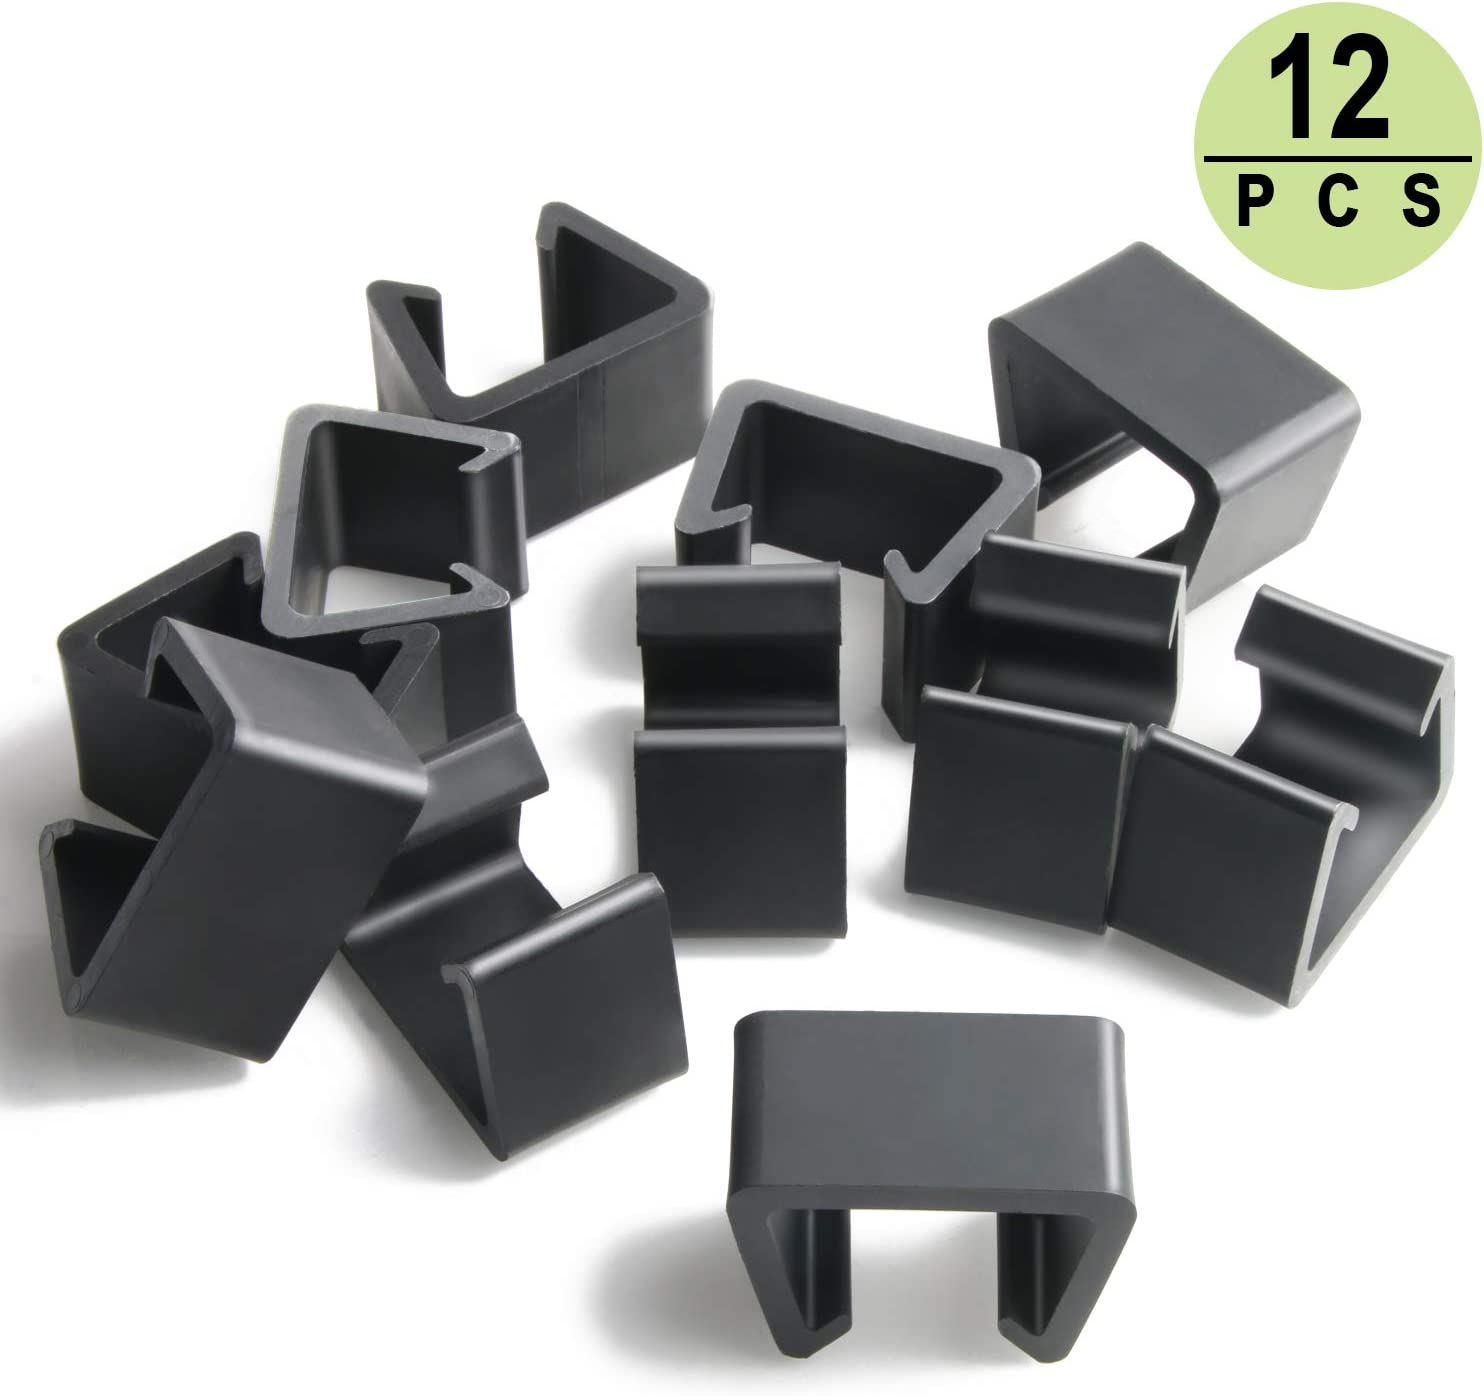 PETKNOWS 12Pcs Patio Wicker Furniture Clips Outdoor Rattan Sectional Sofa Chairs Connector Fastener Clips (Medium): Kitchen & Dining